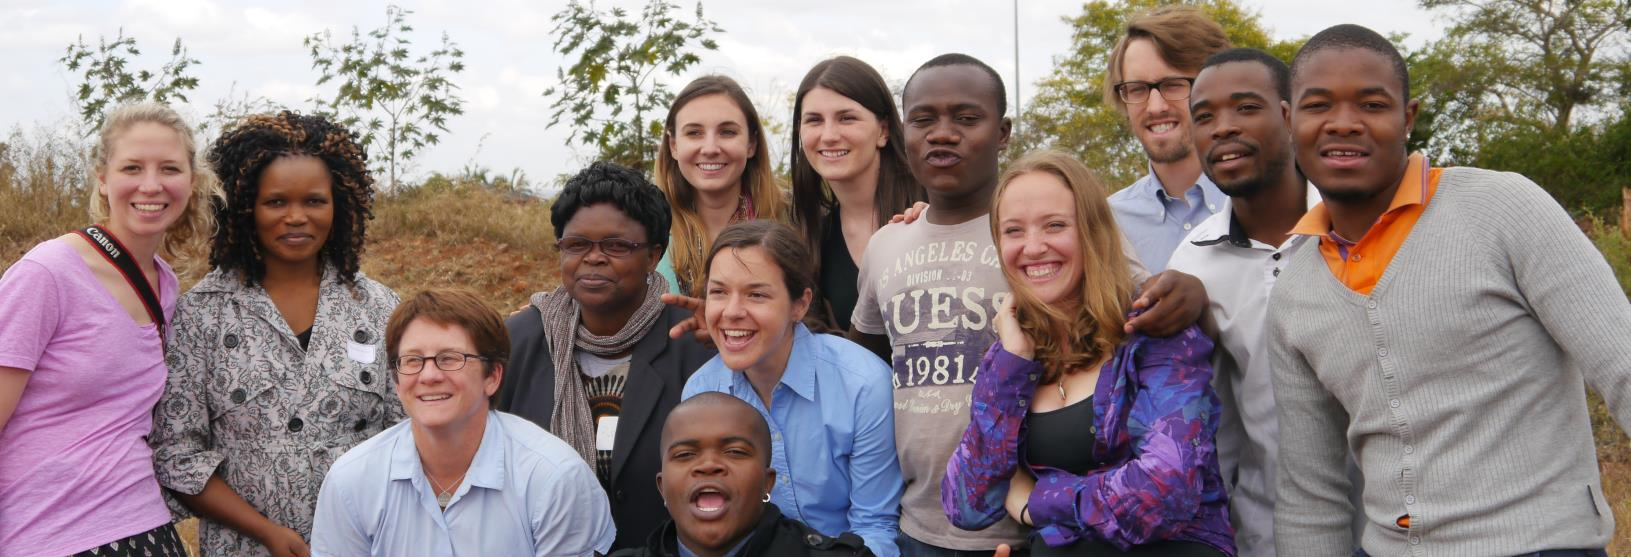 2014 CHIL and Univen Students in South Africa